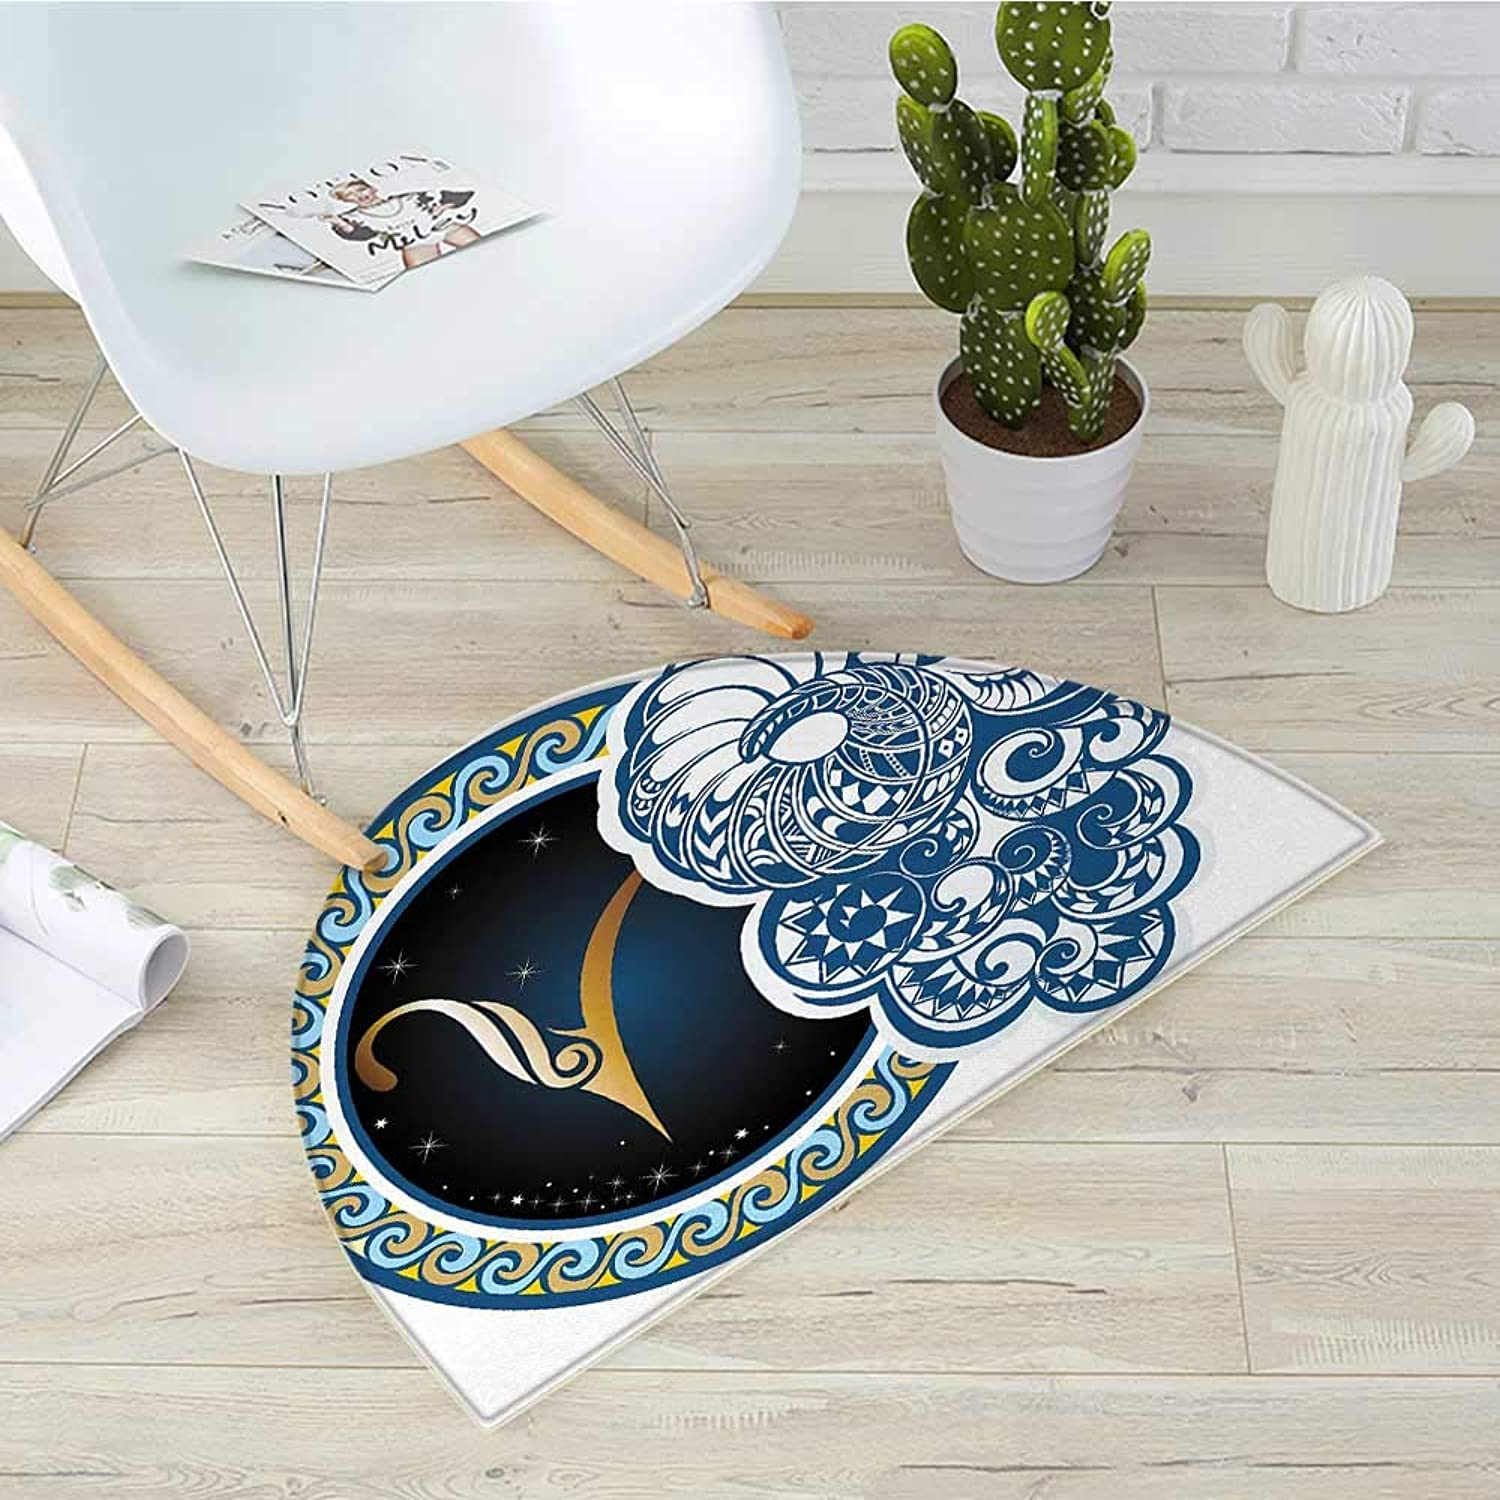 Zodiac Half Round Door mats Astrological Aries Symbol with Horned Head Ram Goat Animal Terrestrial Event Image Bathroom Mat H 39.3  xD 59  Multicolor